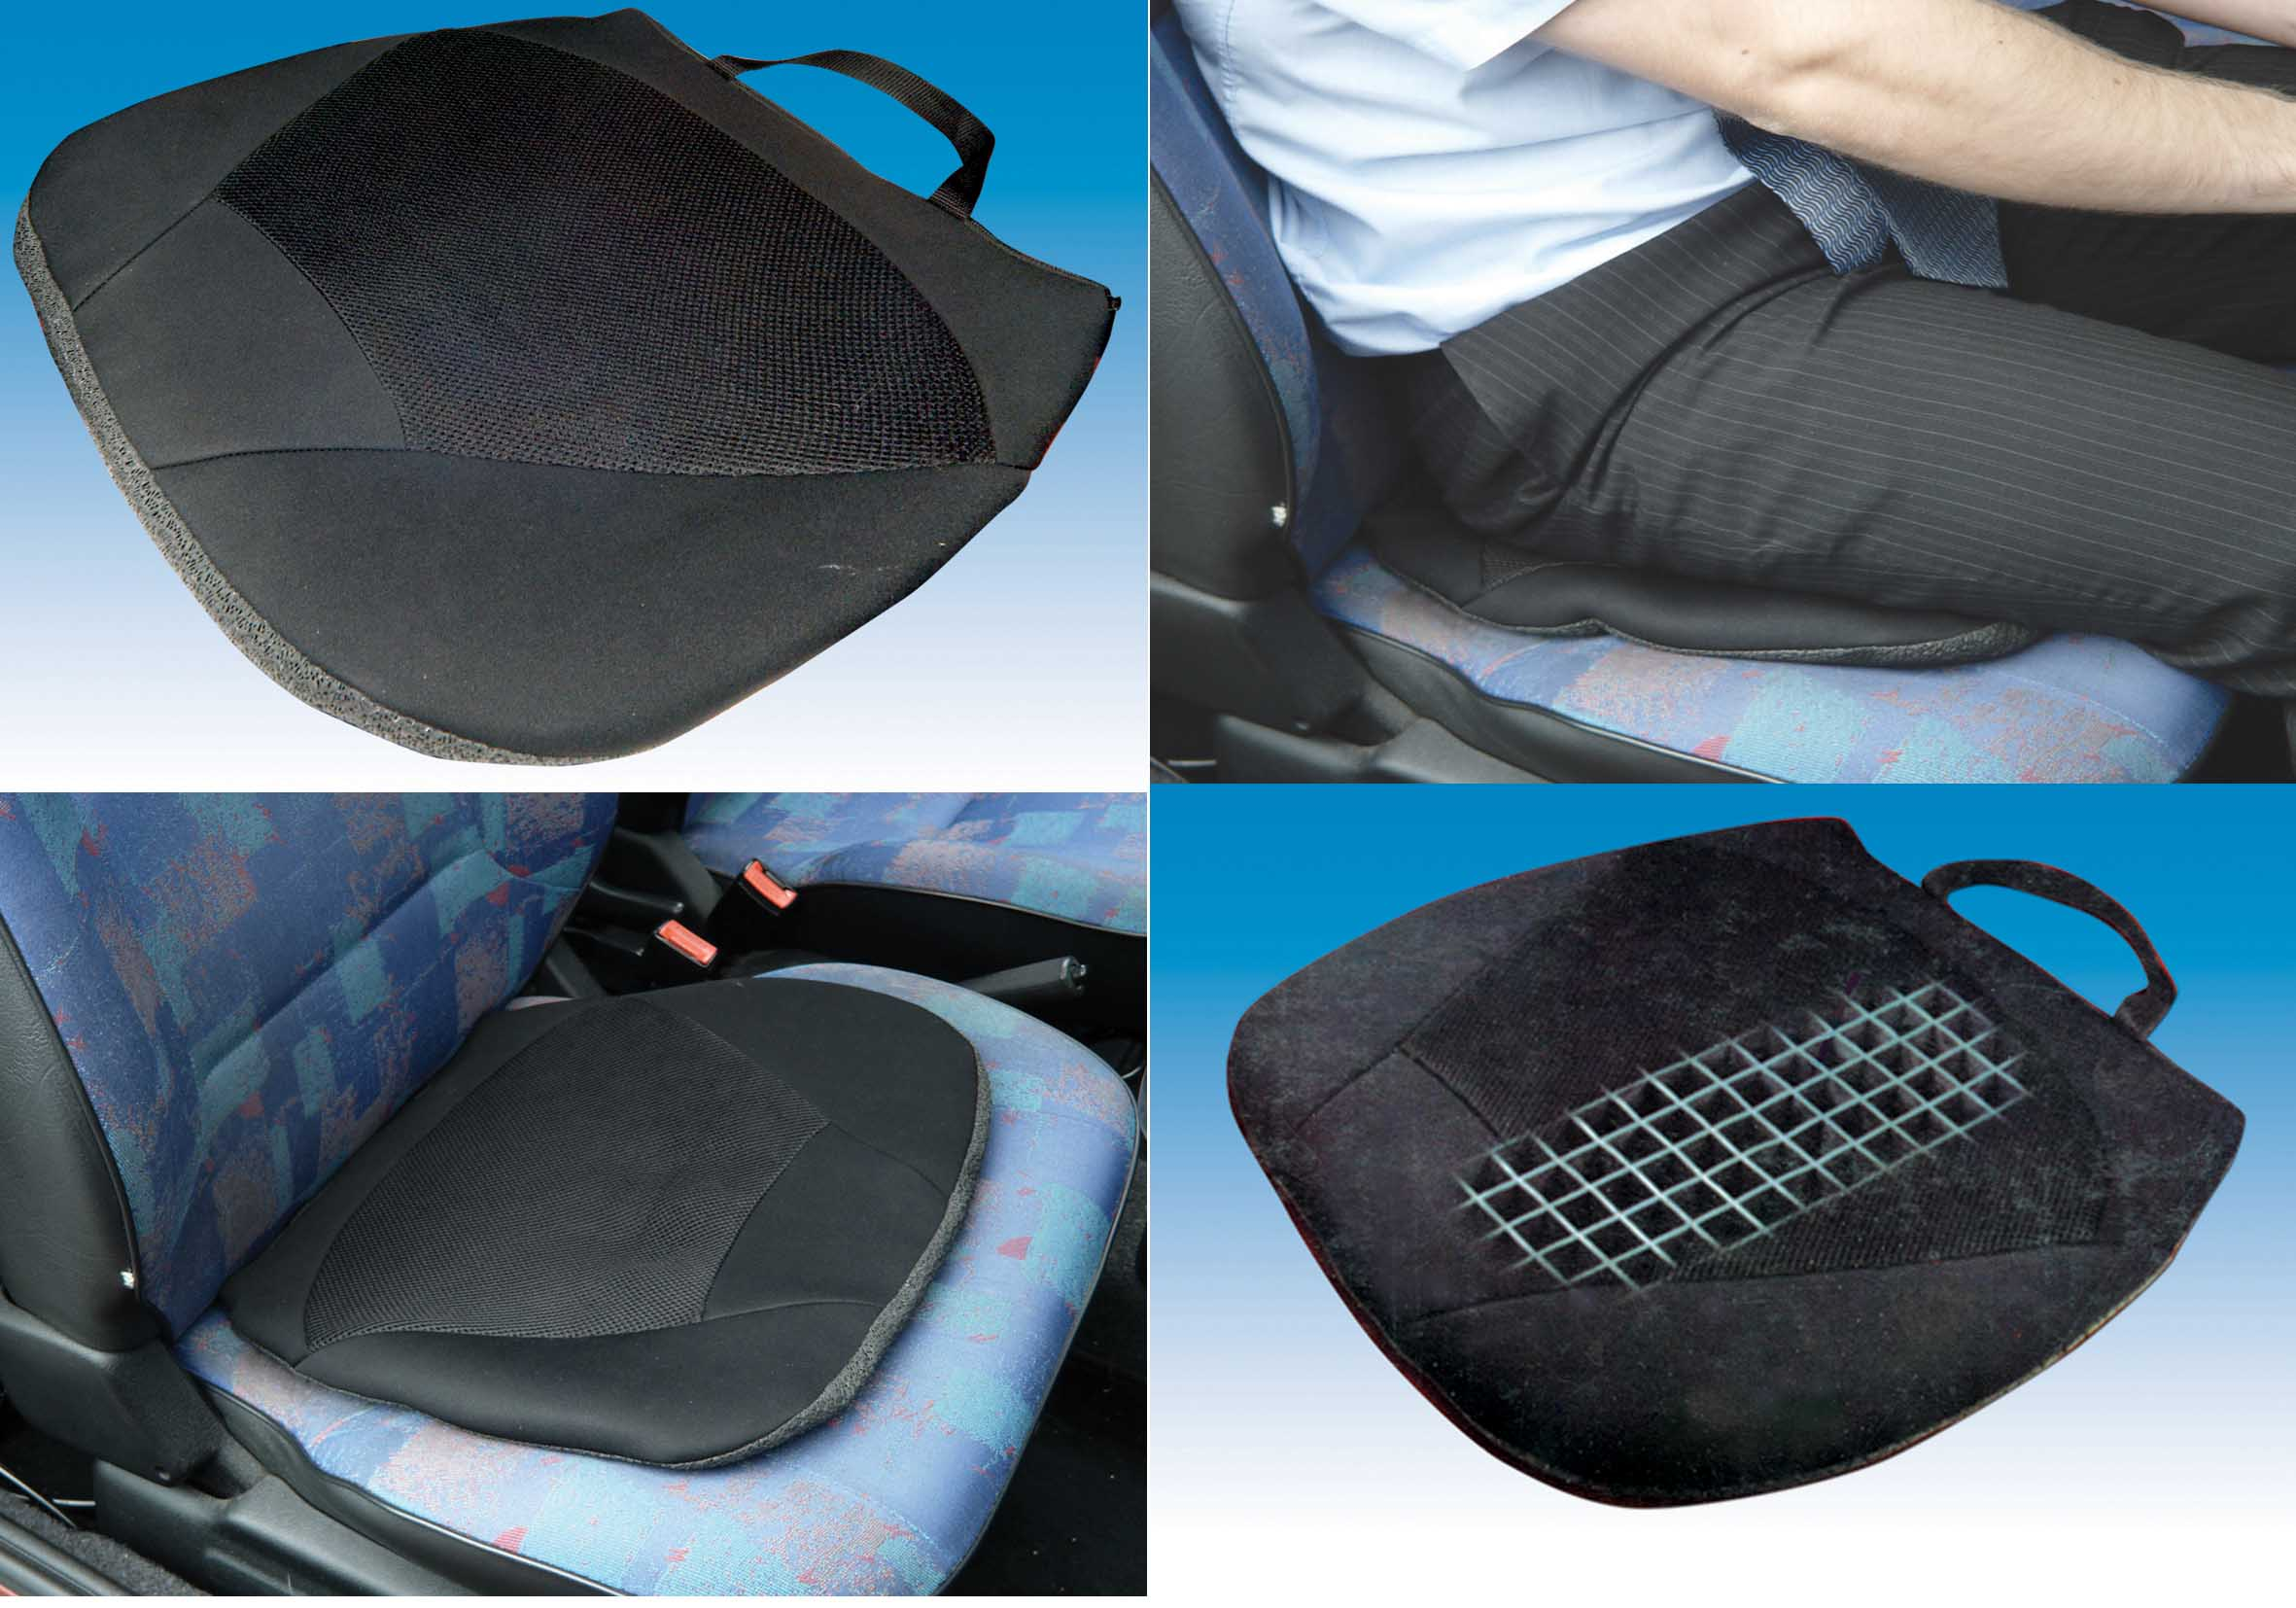 The Comfort of Car Seat Cushions